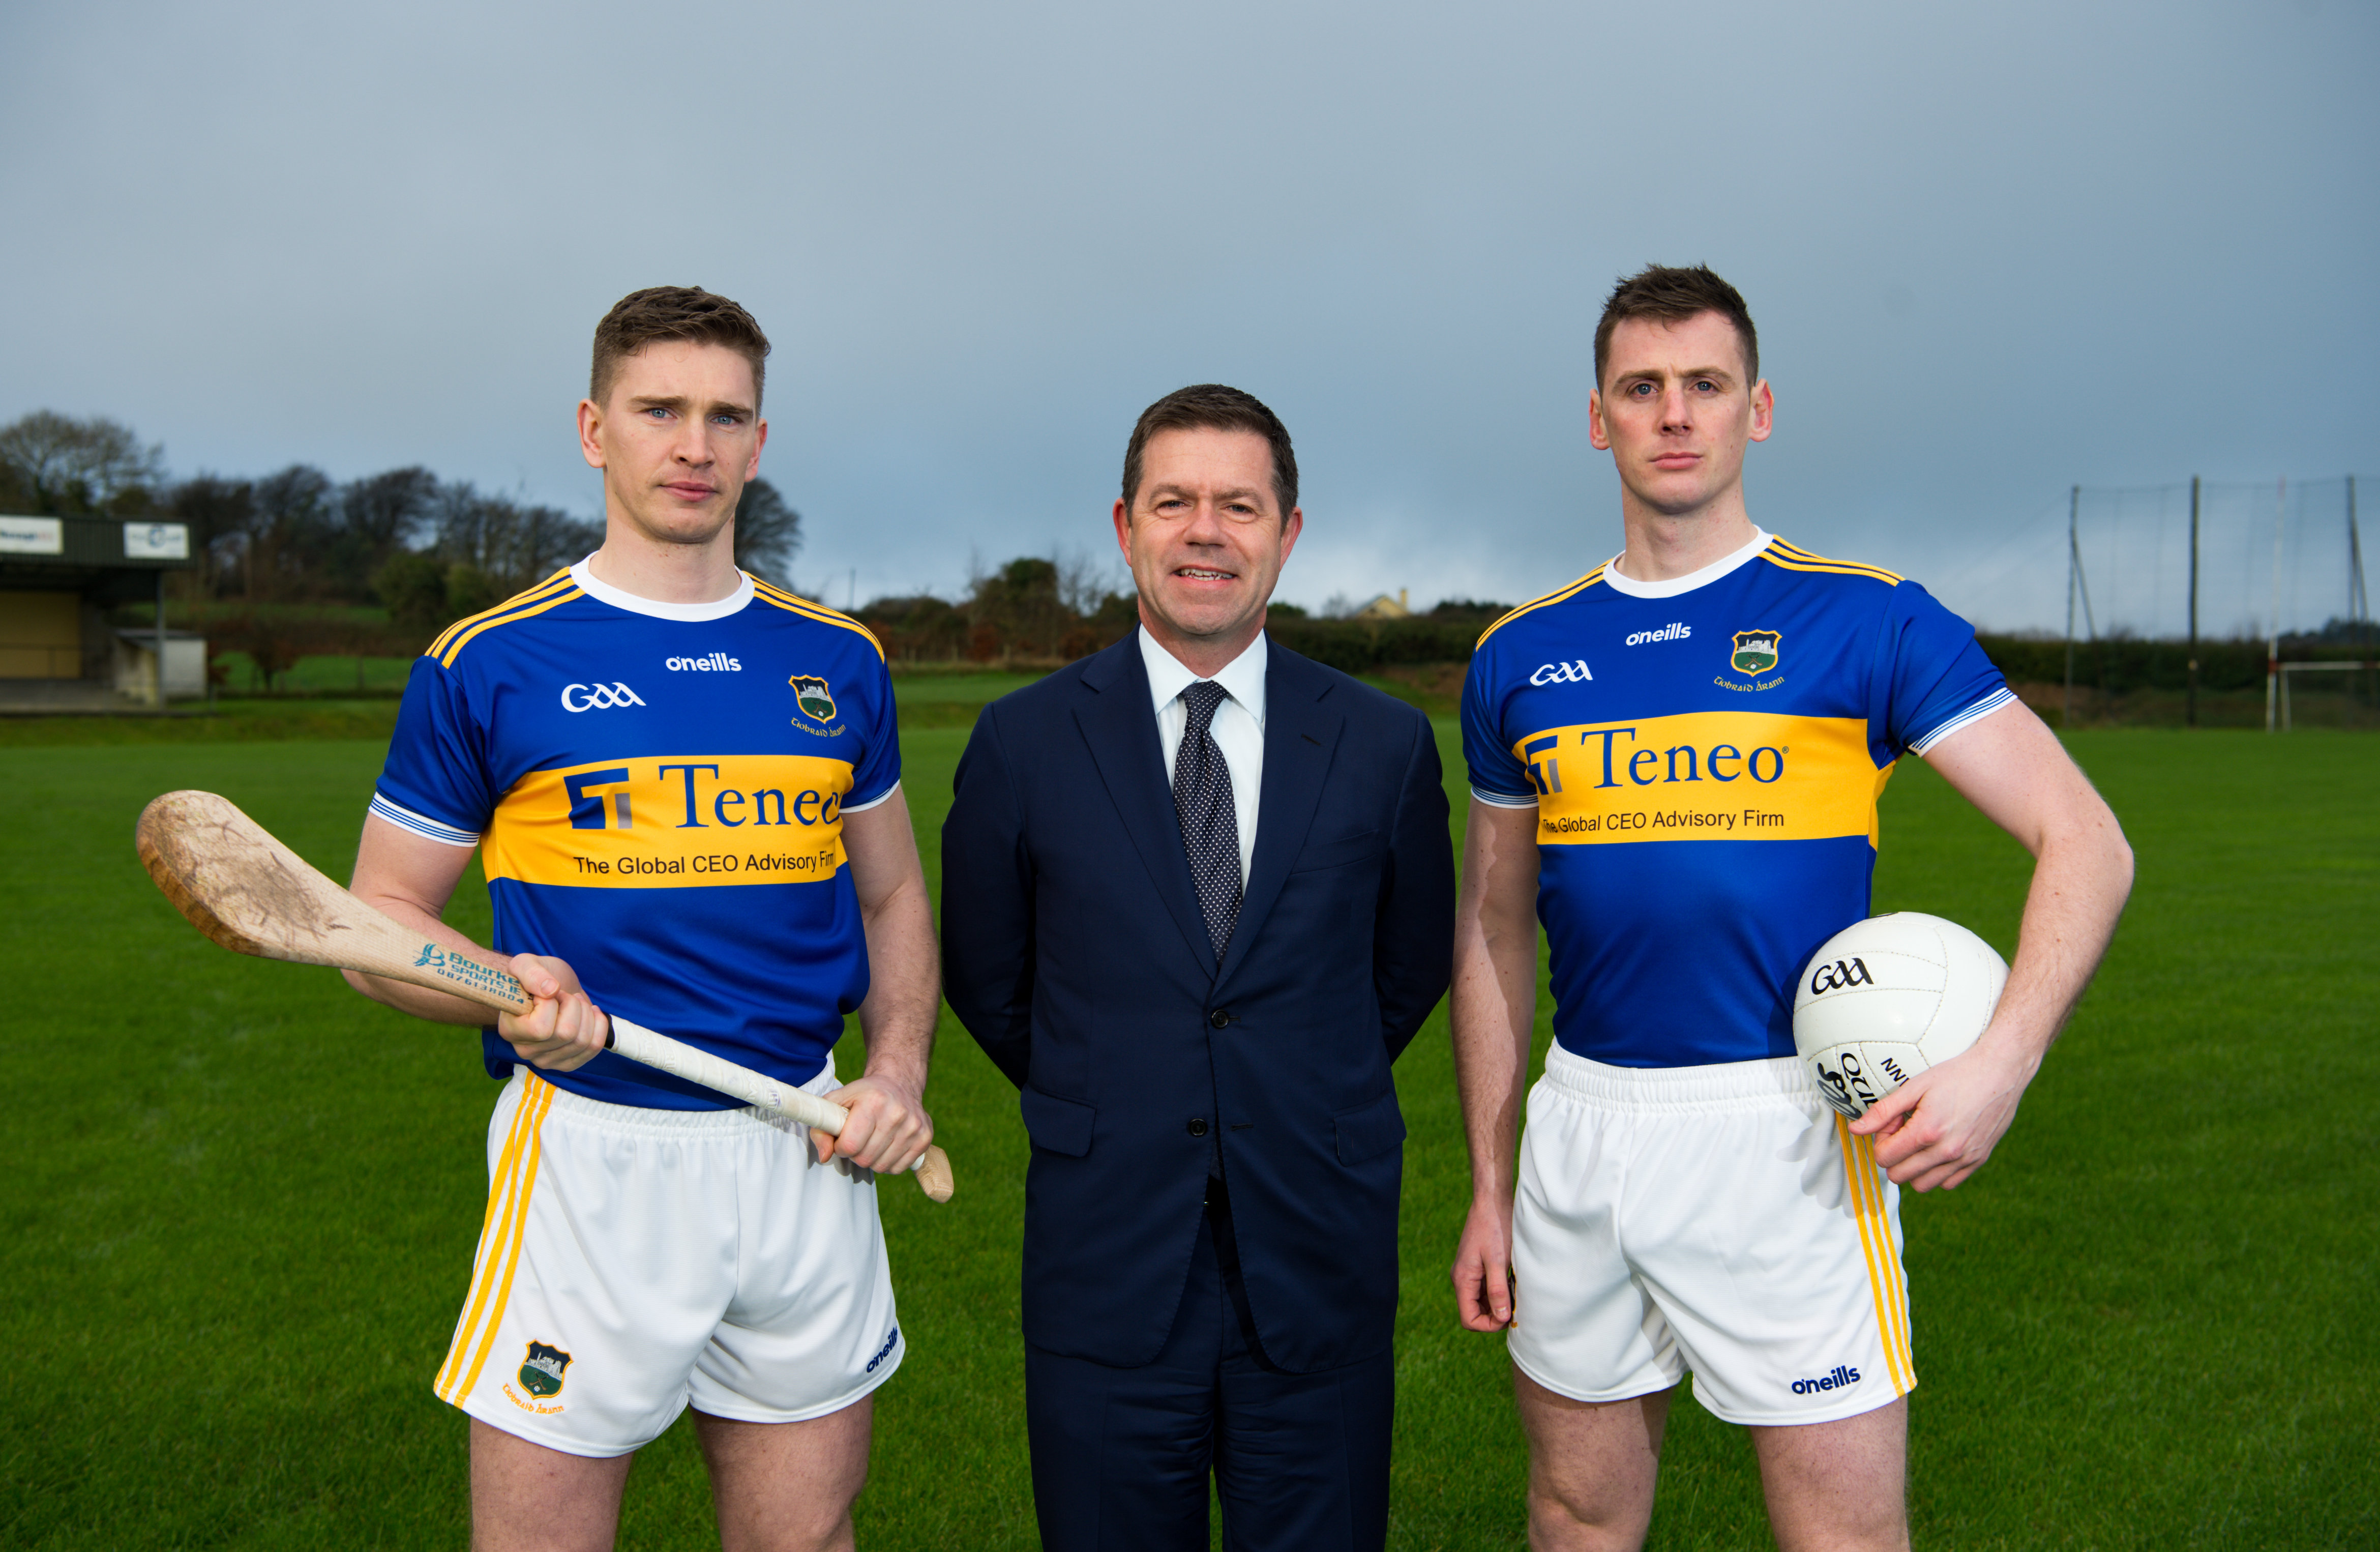 New Tipperary GAA jersey unveiled